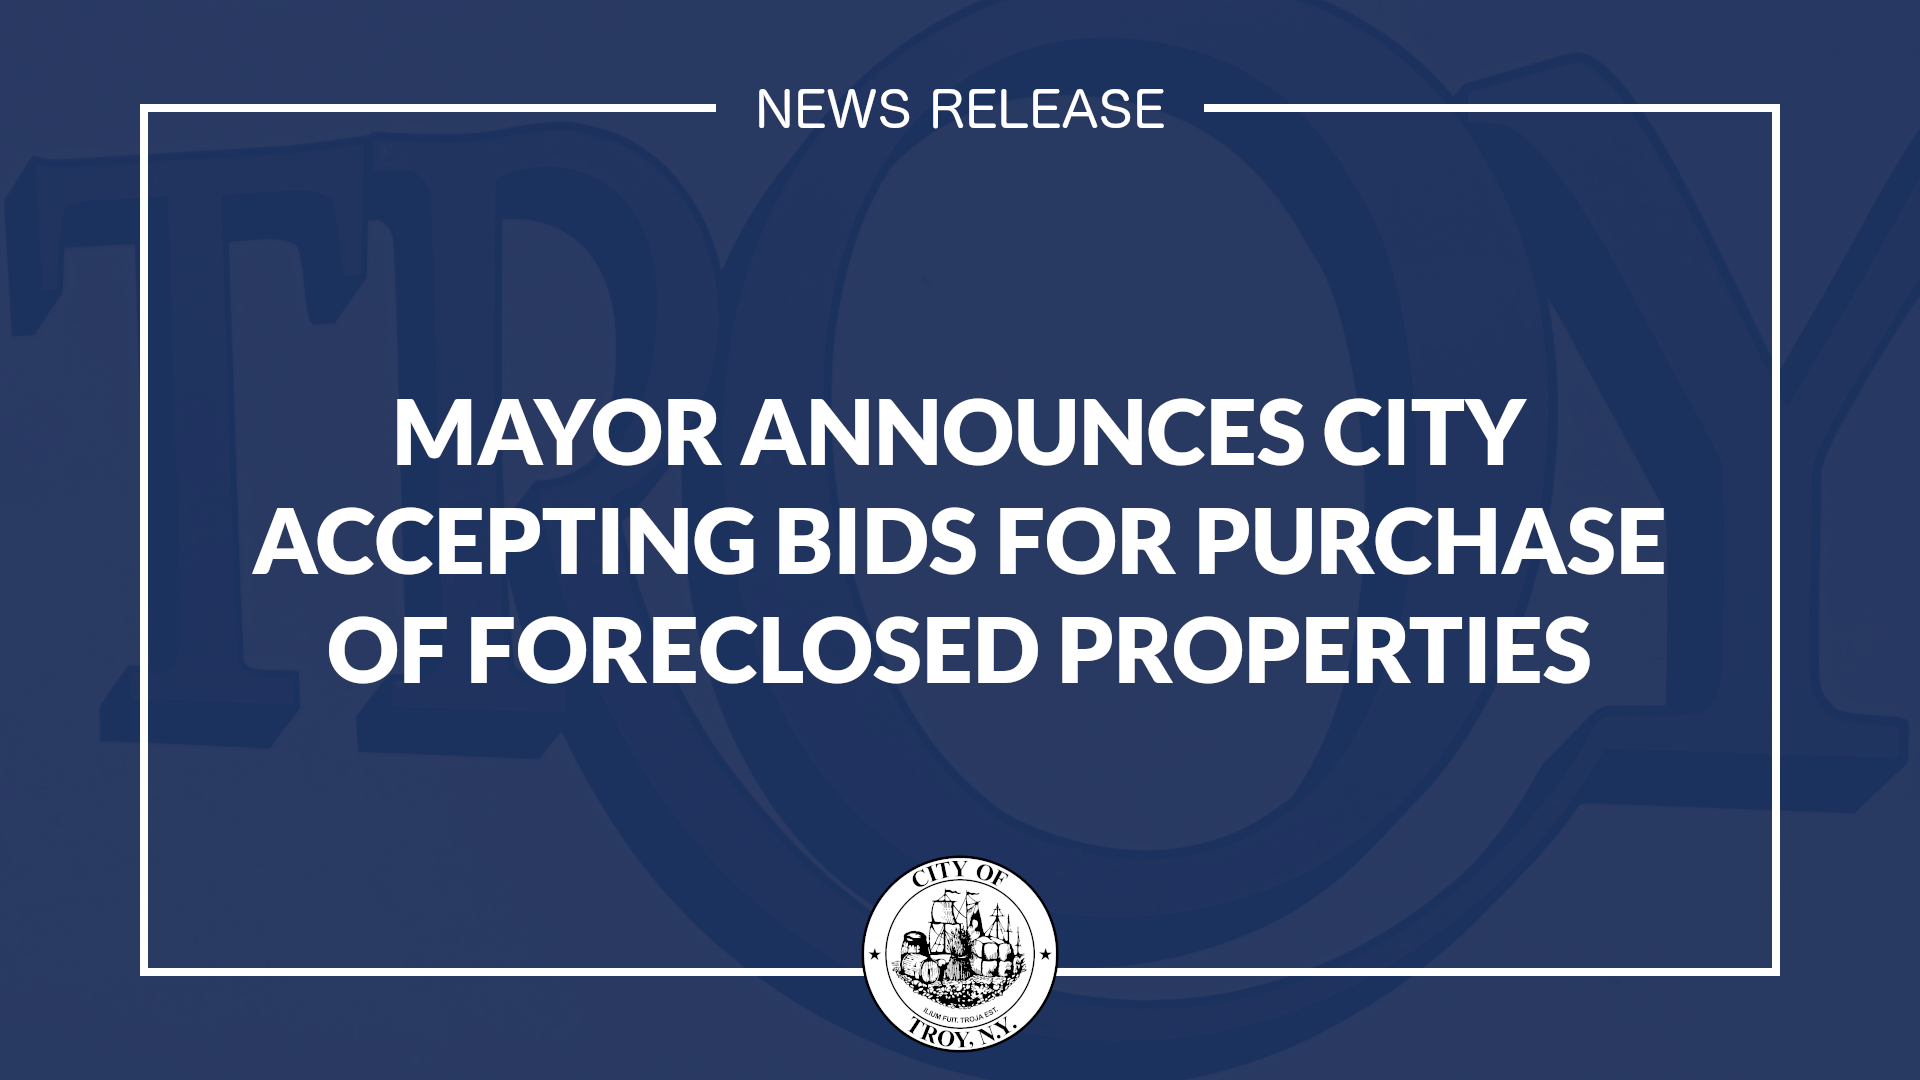 White text against a dark blue background. Text reads Mayor Announces city Accepting Bids for Purchase of Foreclosed Properties. The text is surrounded by a white box, with the official seal of the City visible below.